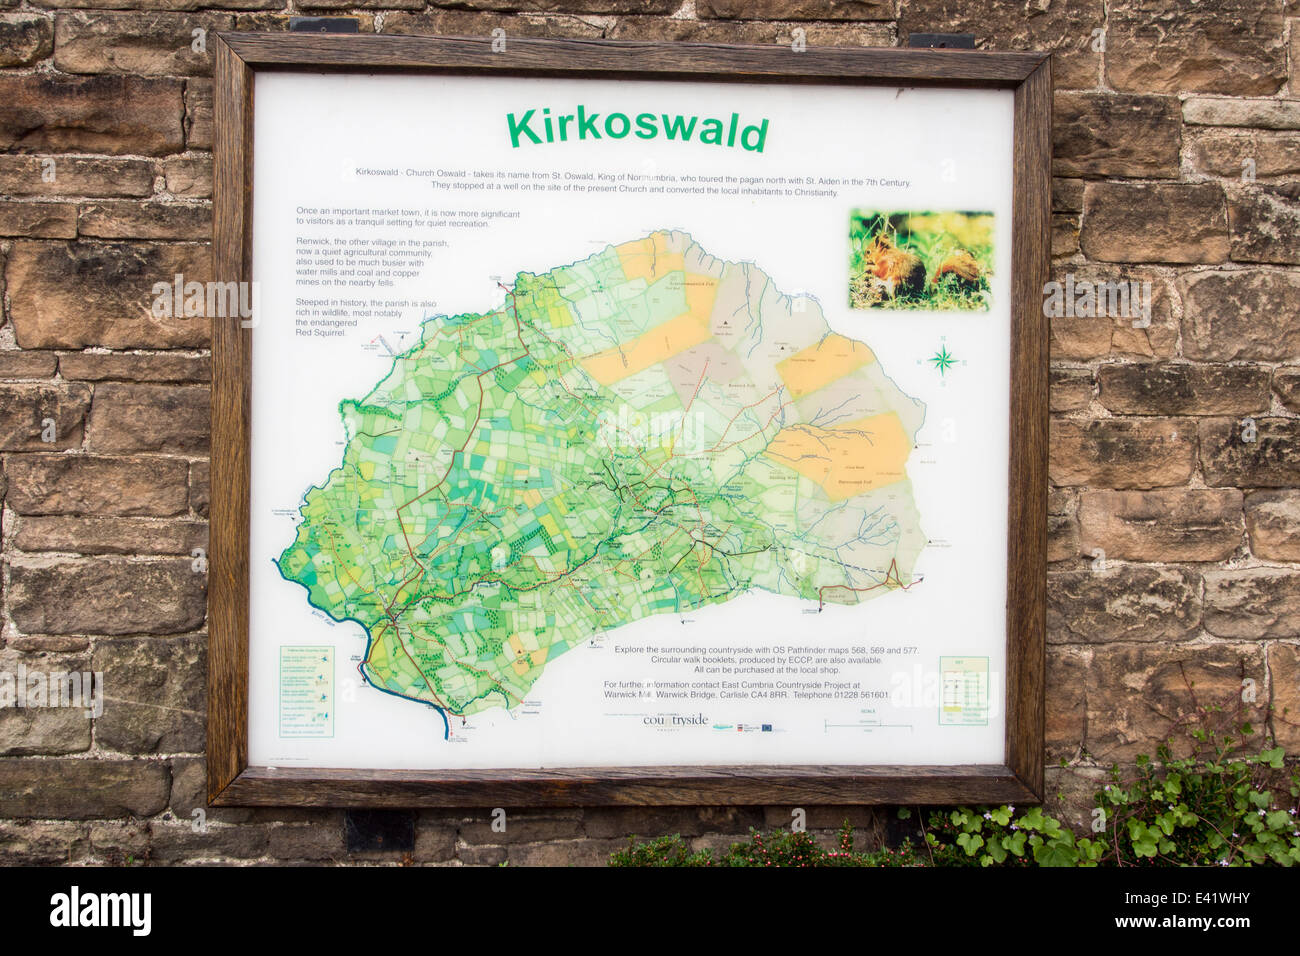 A map of Kirkoswold in the Eden Valley, Cumbria, - Stock Image